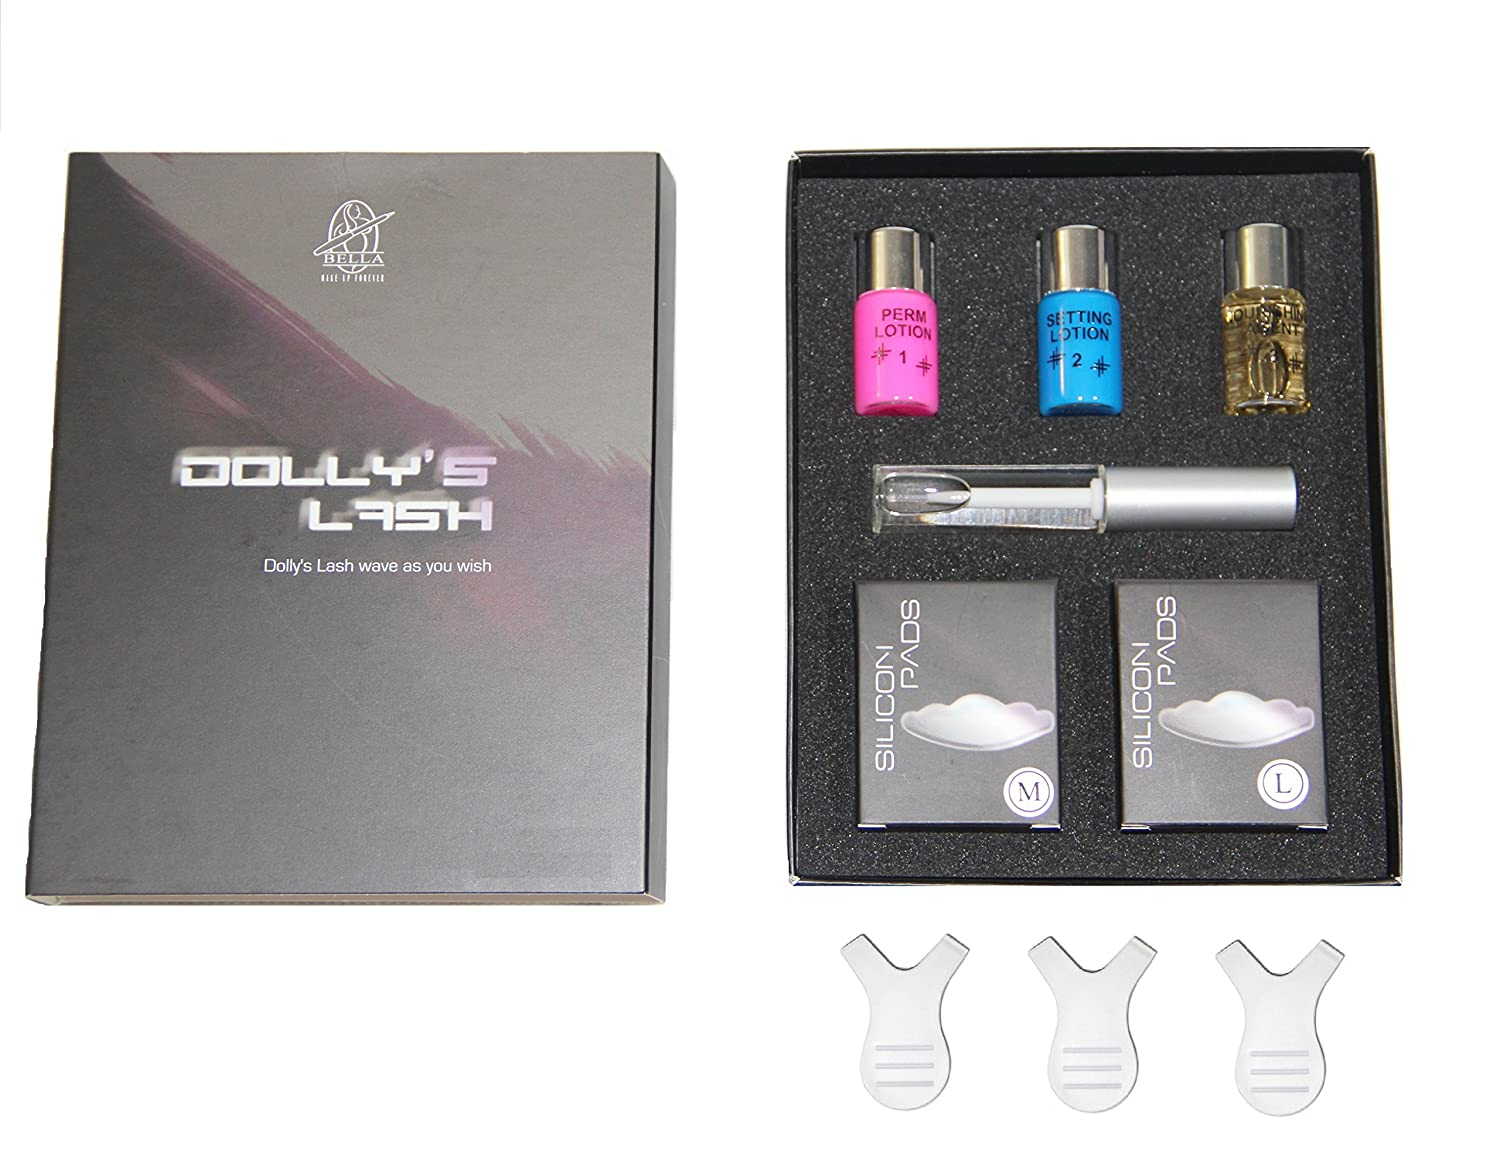 Dolly's Eye Lash Wave Lotion Kit by Dolly's Lash Dolly' s Lash